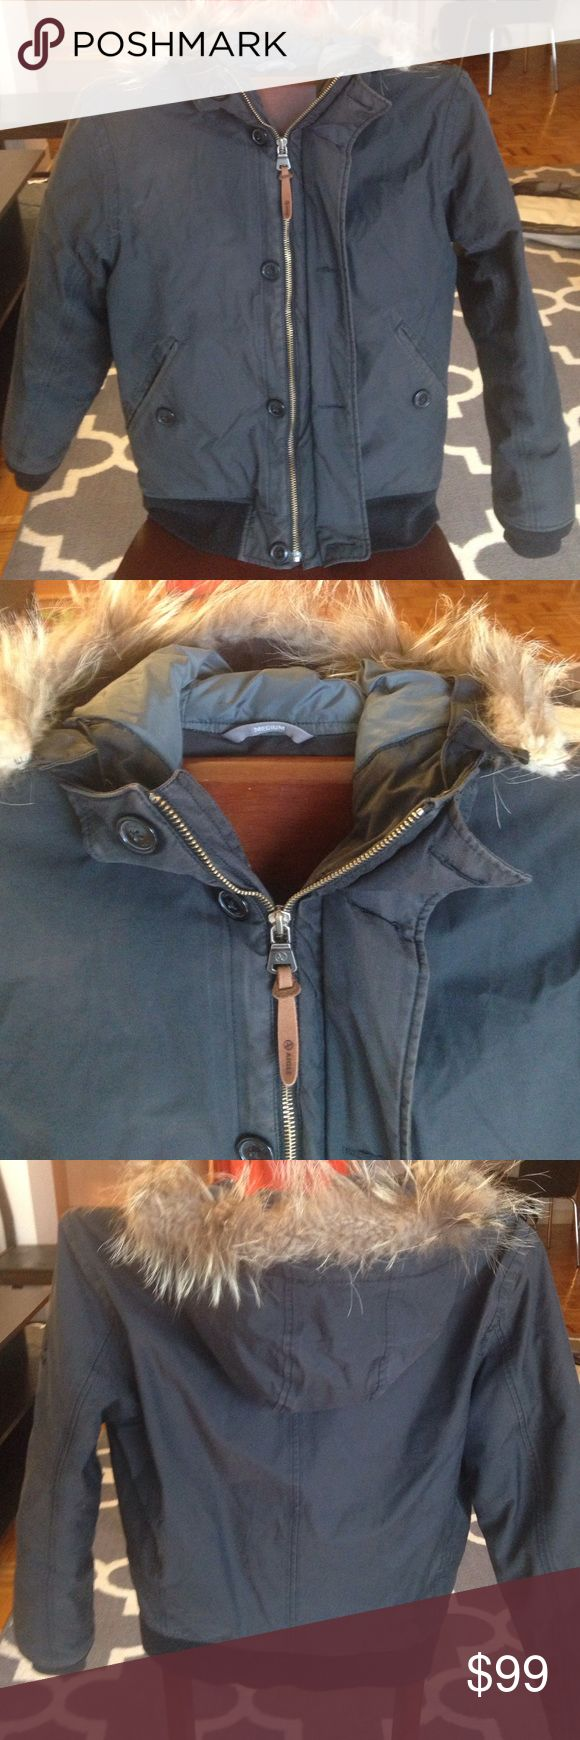 Men's Medium Aigle Parka in Charcoal This down coat is in excellent condition! It has; removable faux fur trimmed hood, zipper and button closures, 2 pockets on outside as well as 2 inside zipper pockets. Perfect winter Parka! Aigle Jackets & Coats